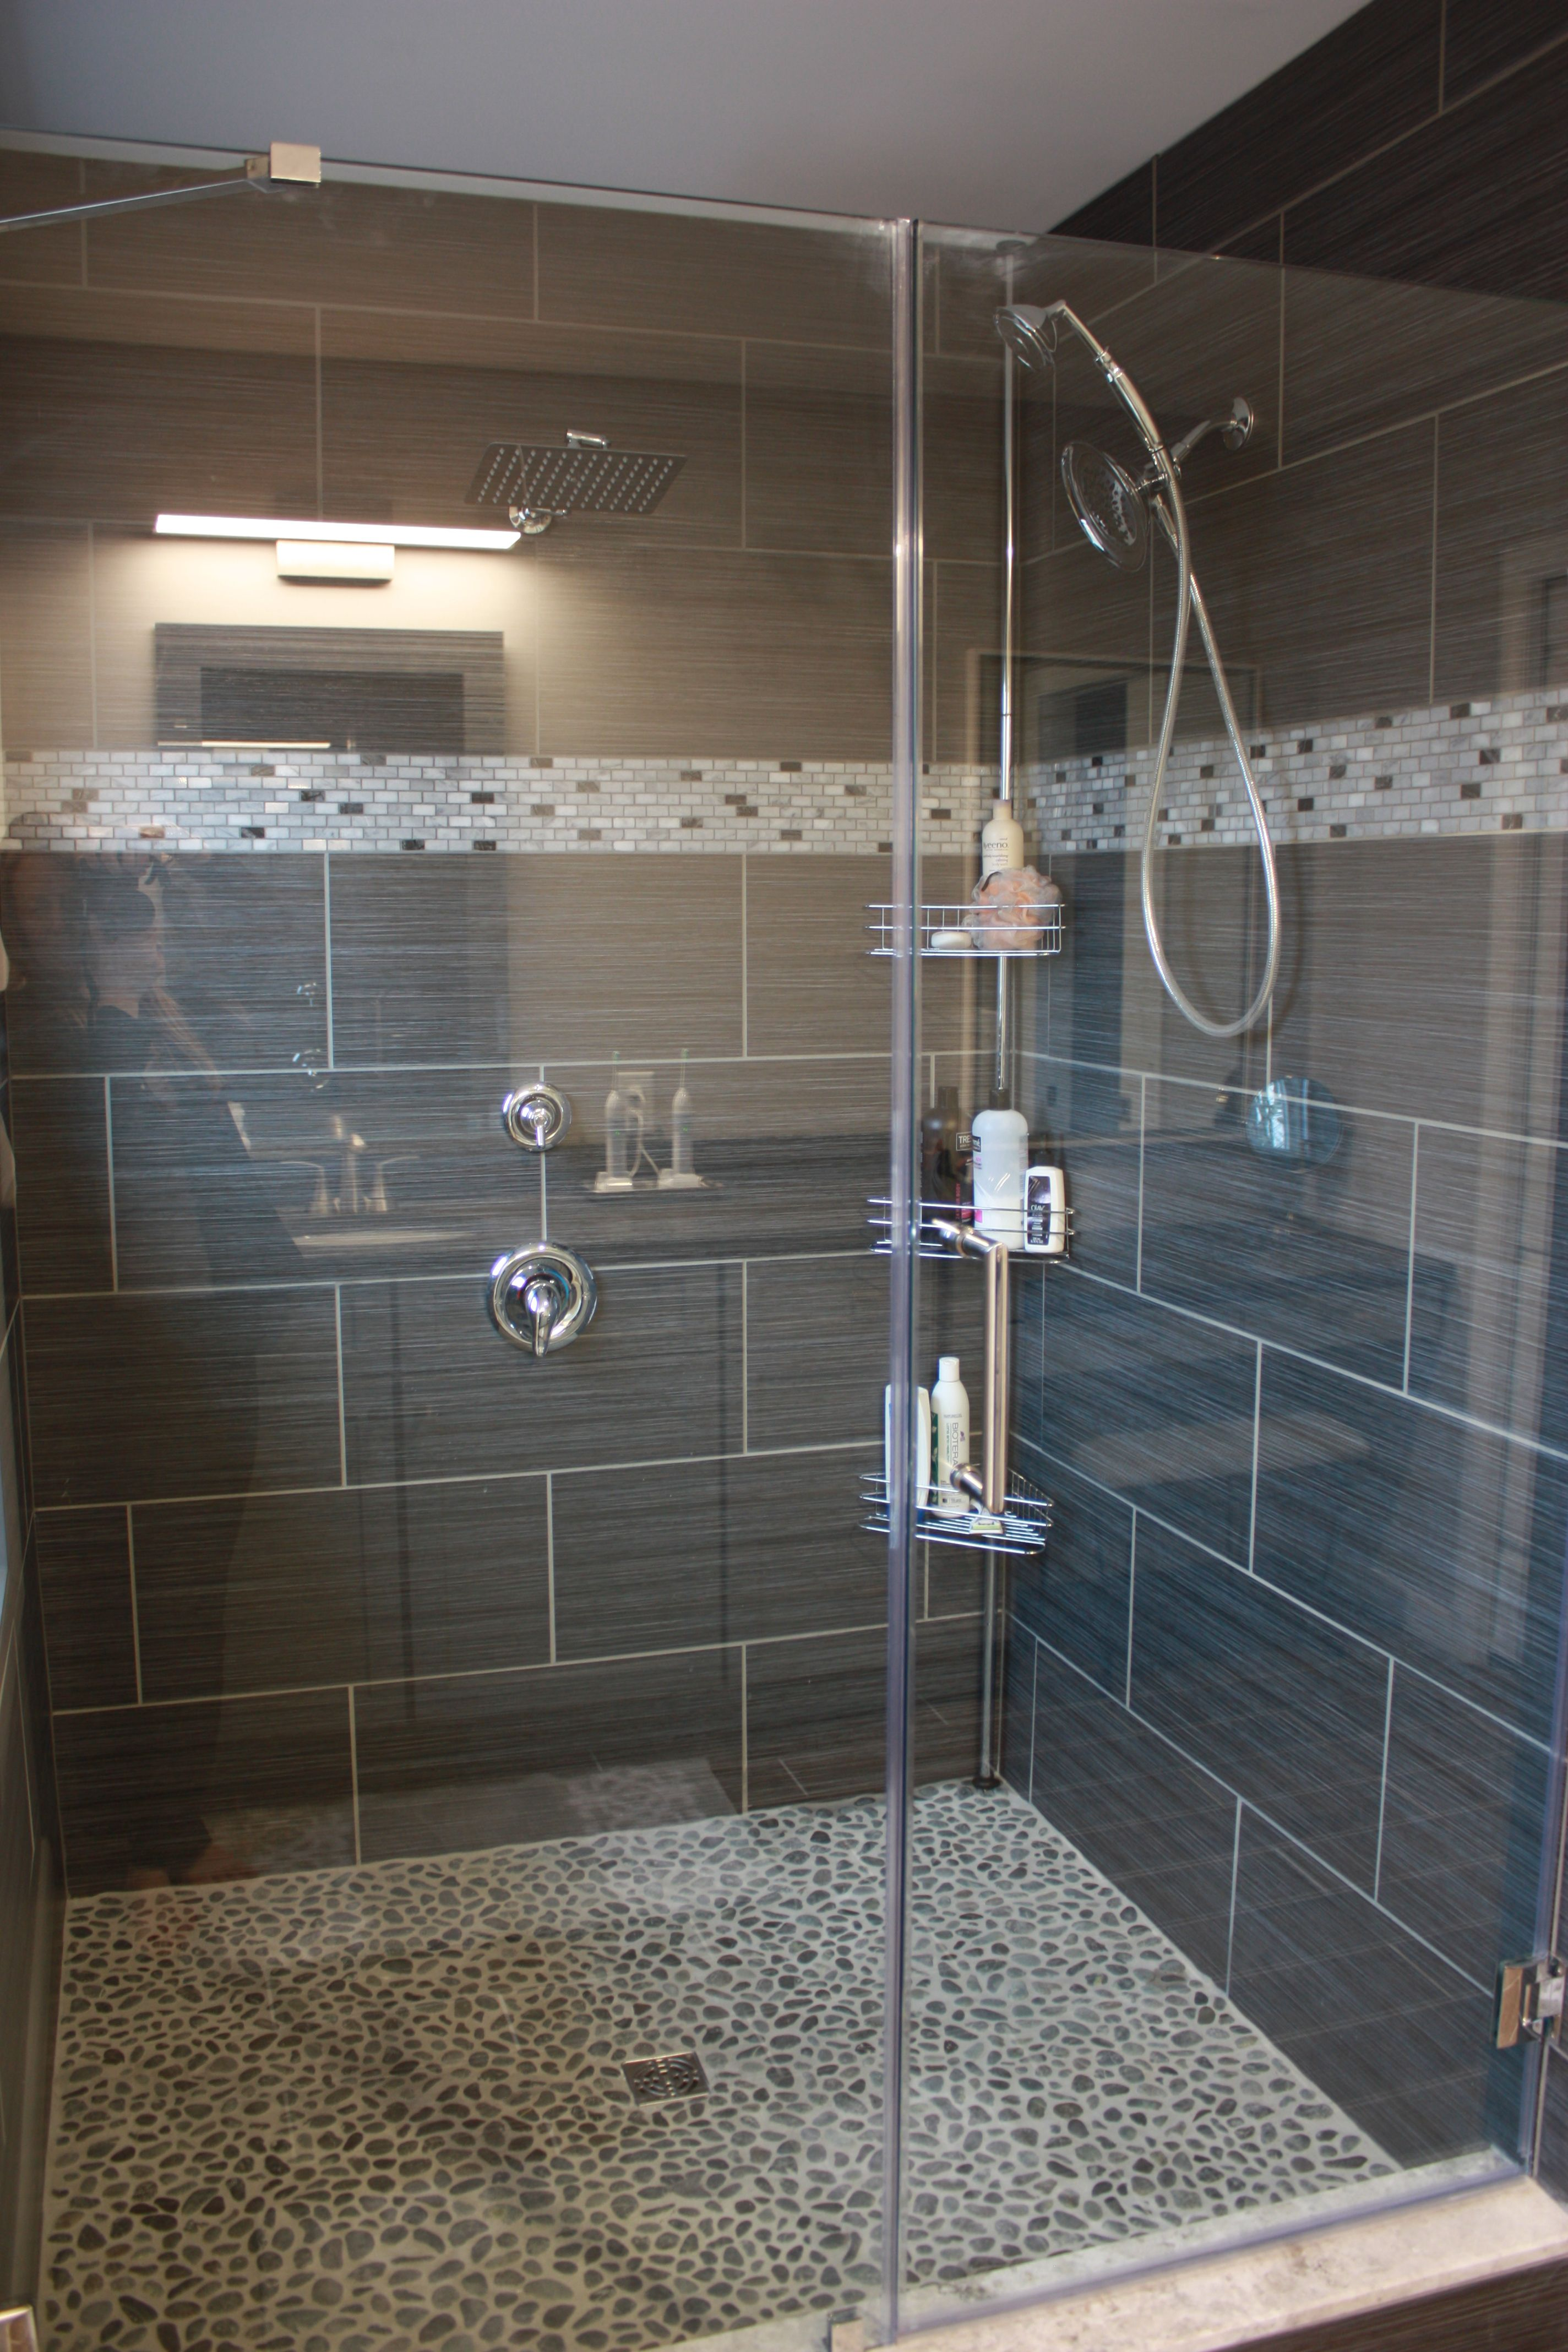 Bathroom Floor To Roof Charcoal Tiles With A Black: Pebble Tile Shower, Pebble